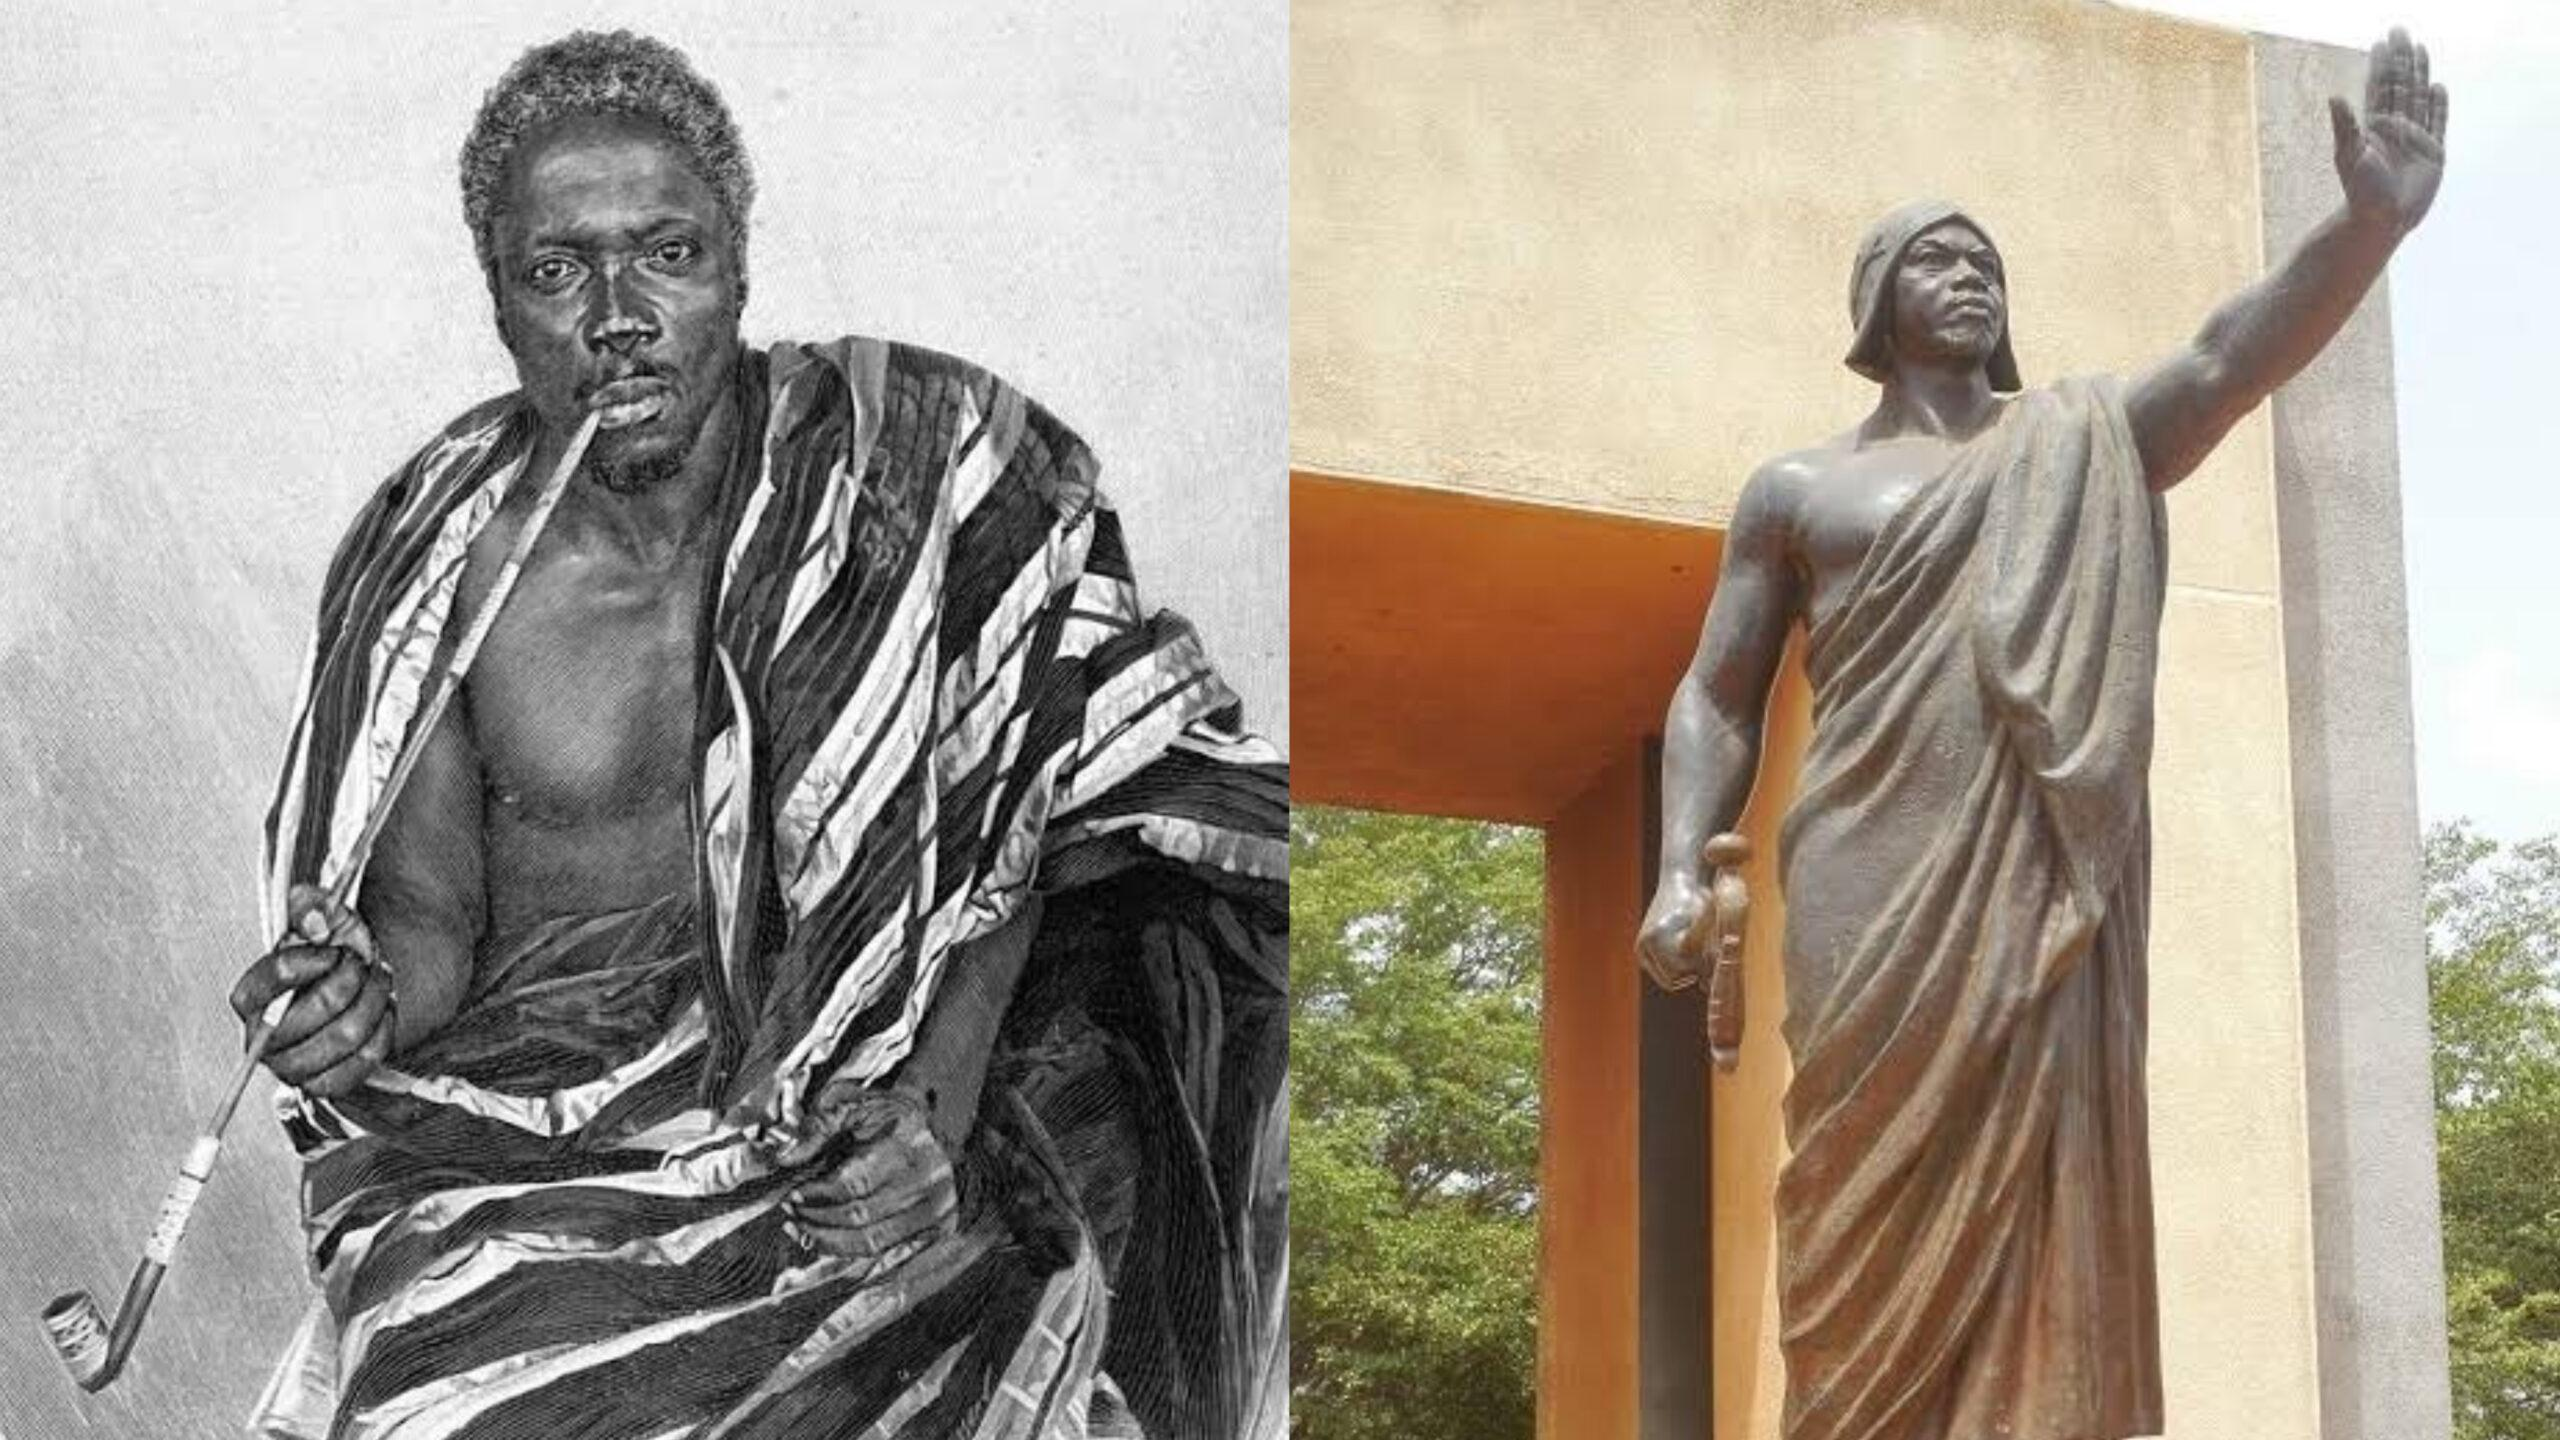 King Shark, one of the greatest African rulers who fought European invasion in Africa